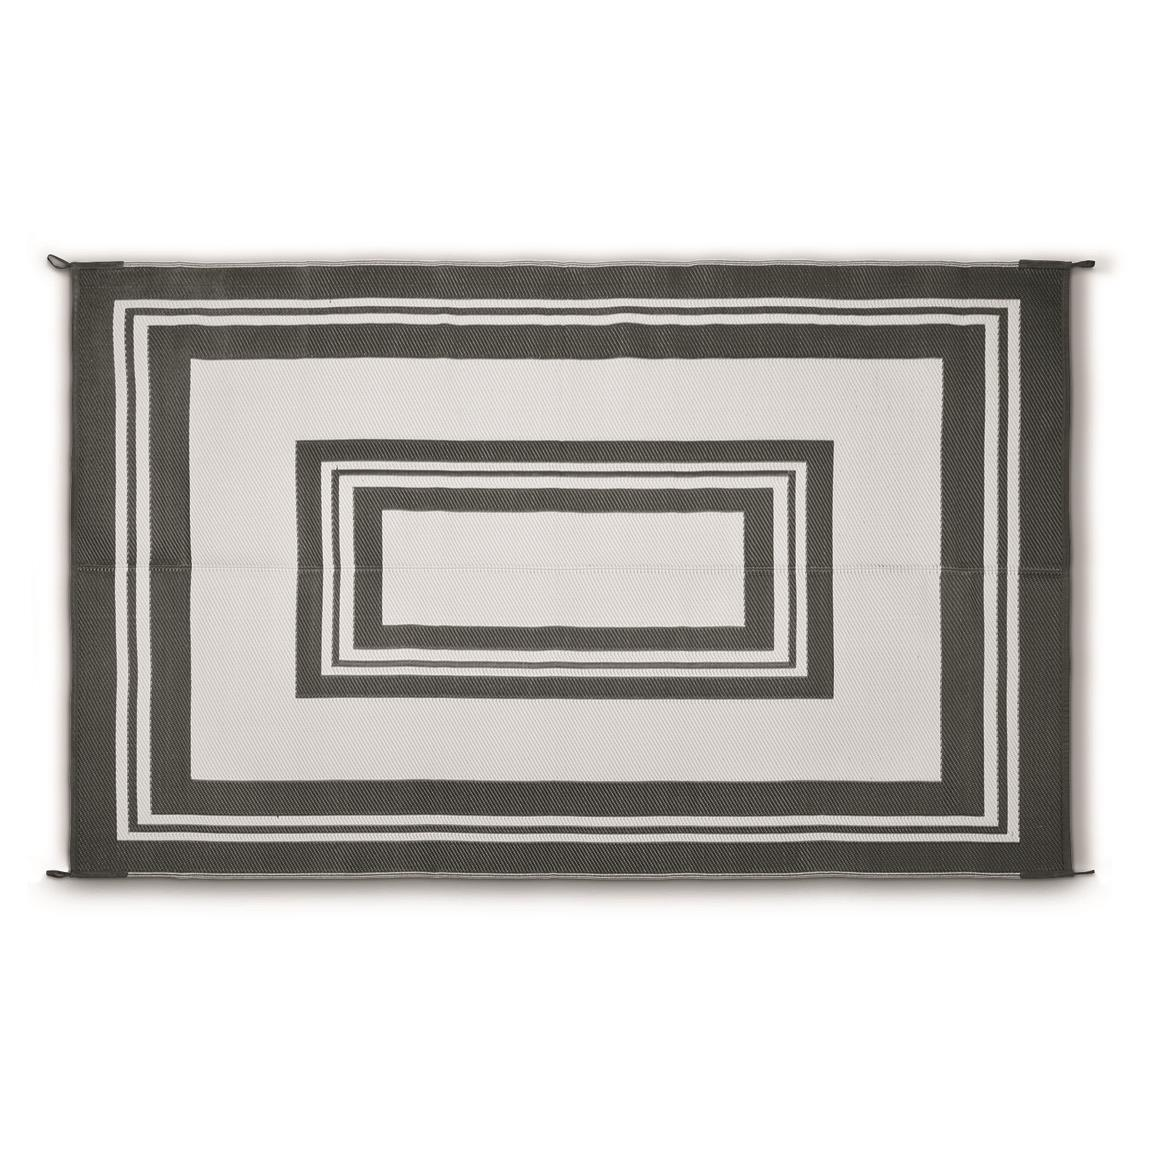 Guide Gear® Reversible Outdoor Rug, Border Pattern, Cream/black